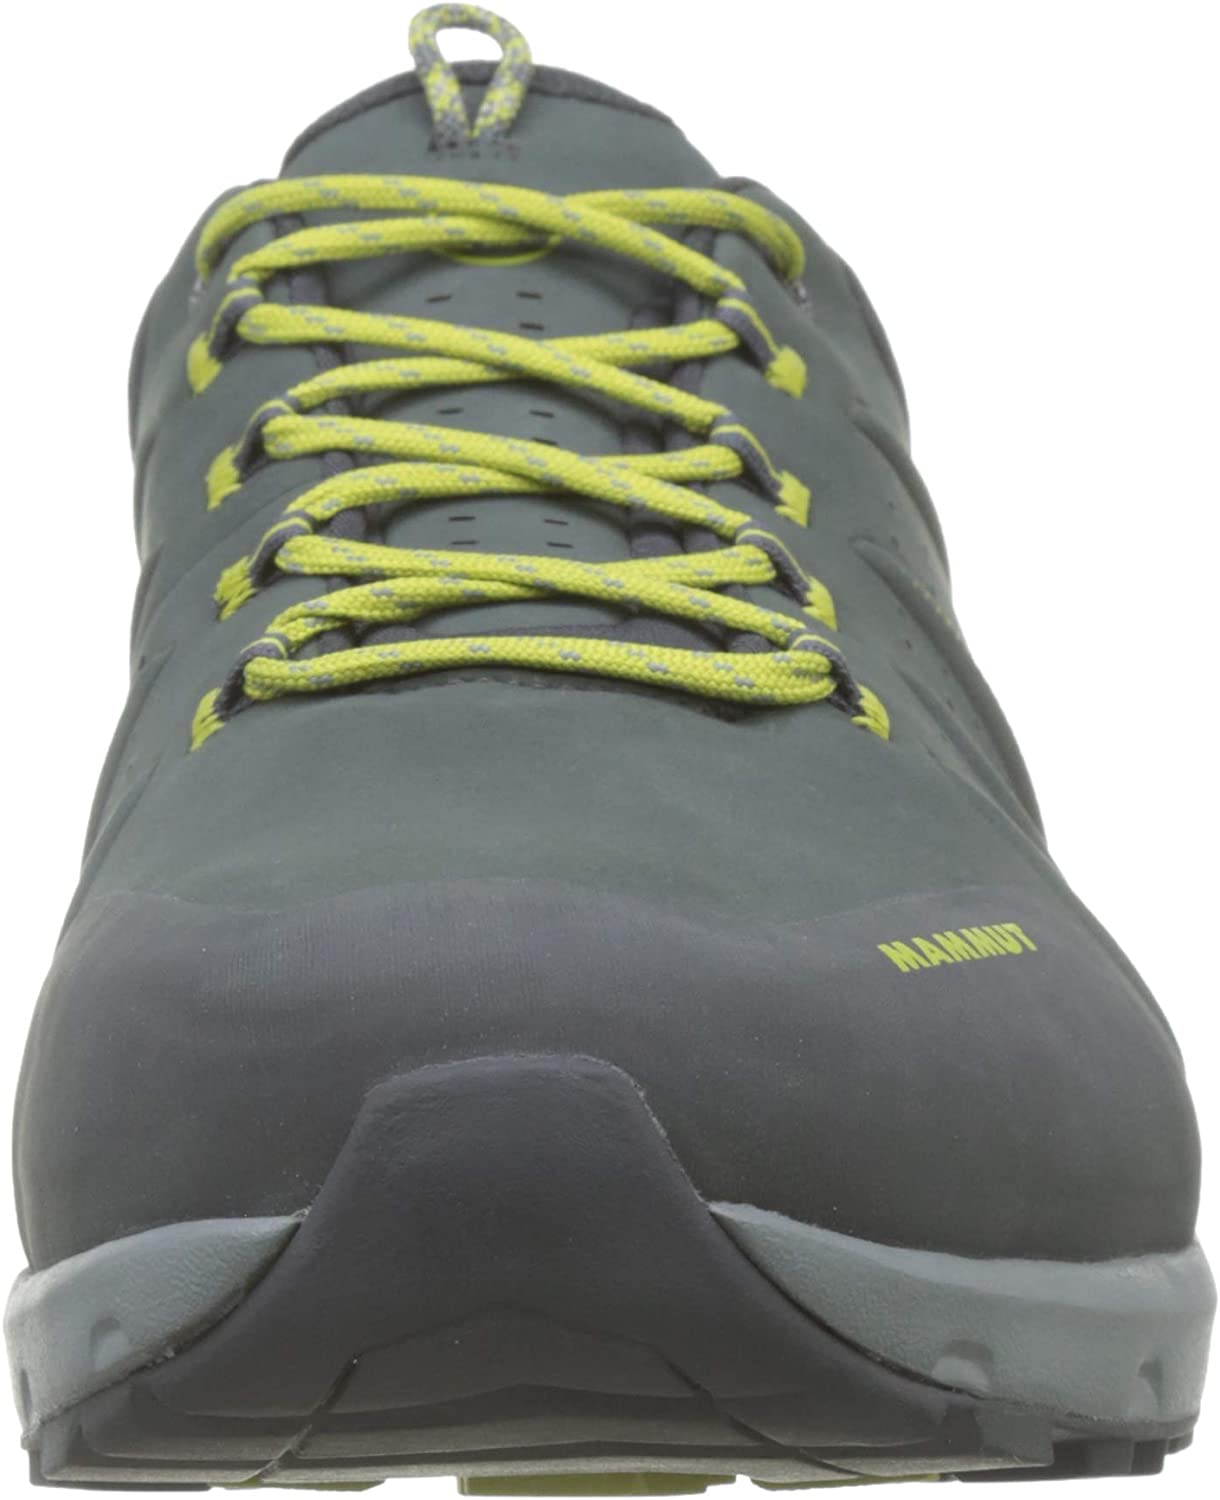 Mammut Men's High Rise Hiking Shoes Low